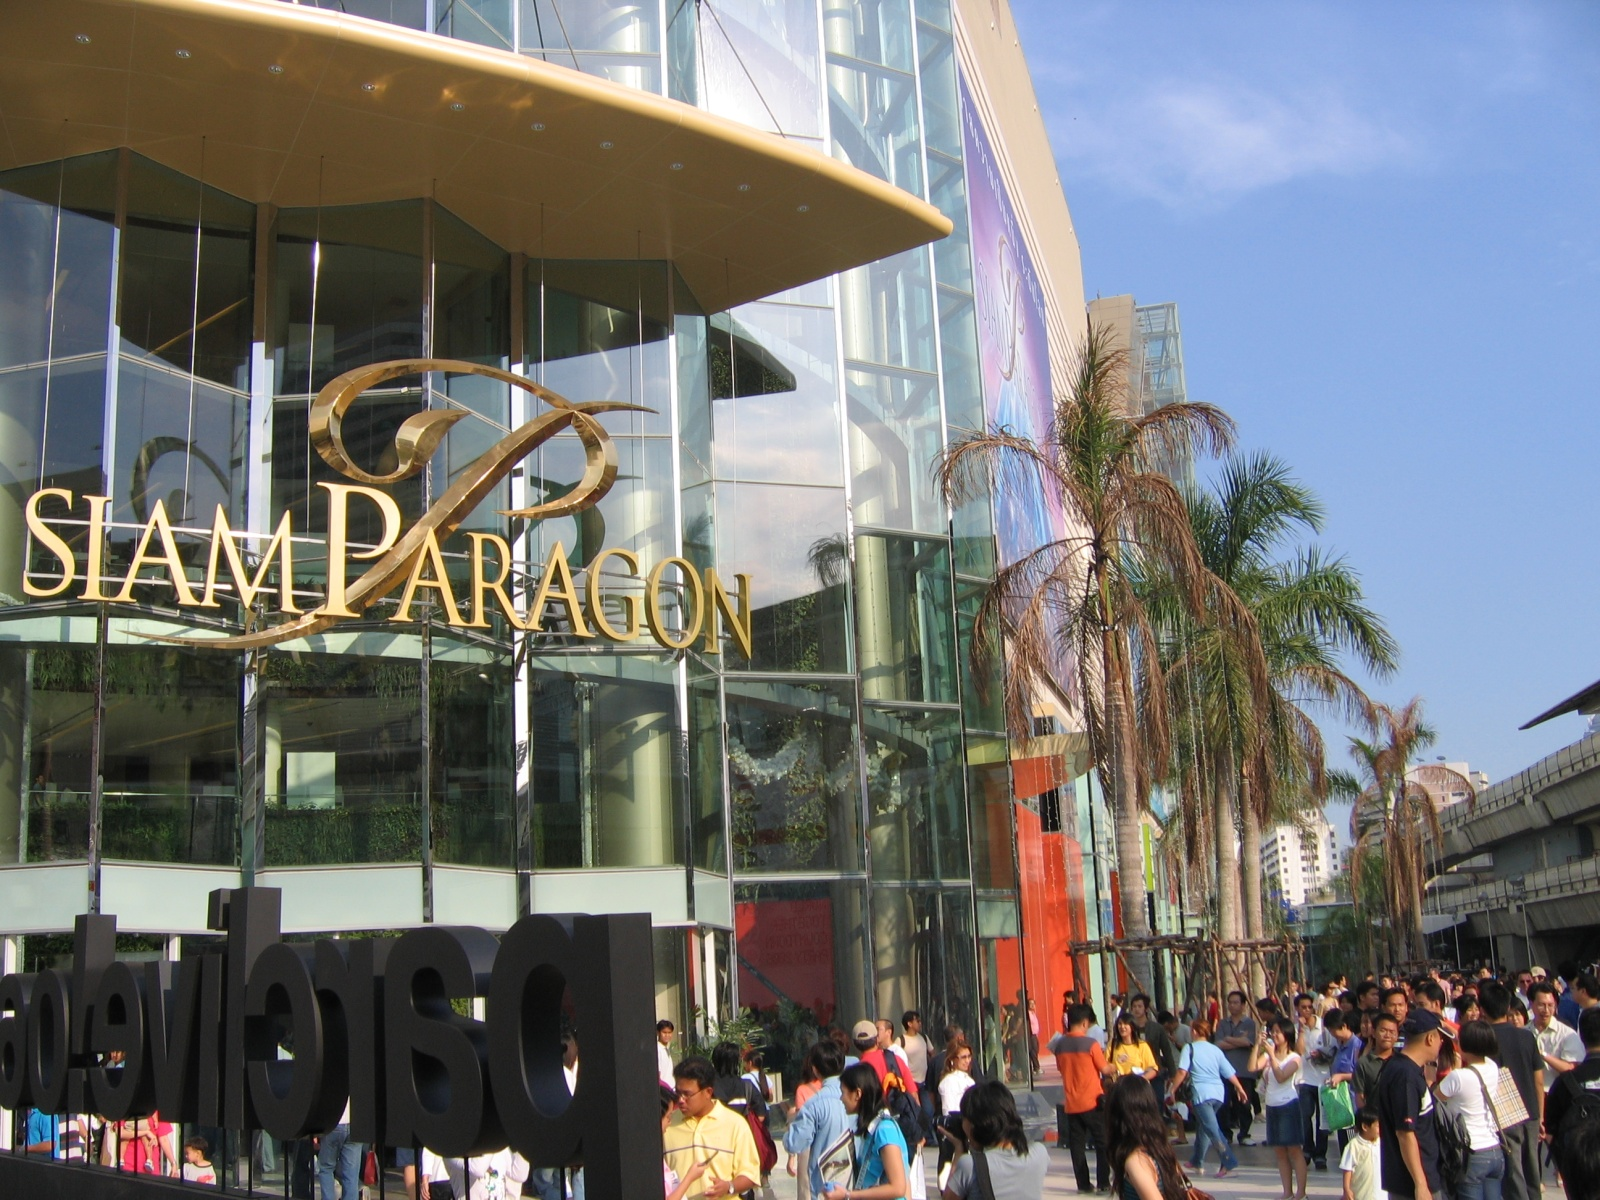 Siam Paragon Bangkok Map,Tourist Attractions in Bangkok Thailand,Map of Siam Paragon Bangkok,Things to do in Bangkok Thailand,Siam Paragon Bangkok accommodation destinations attractions hotels map reviews photos pictures